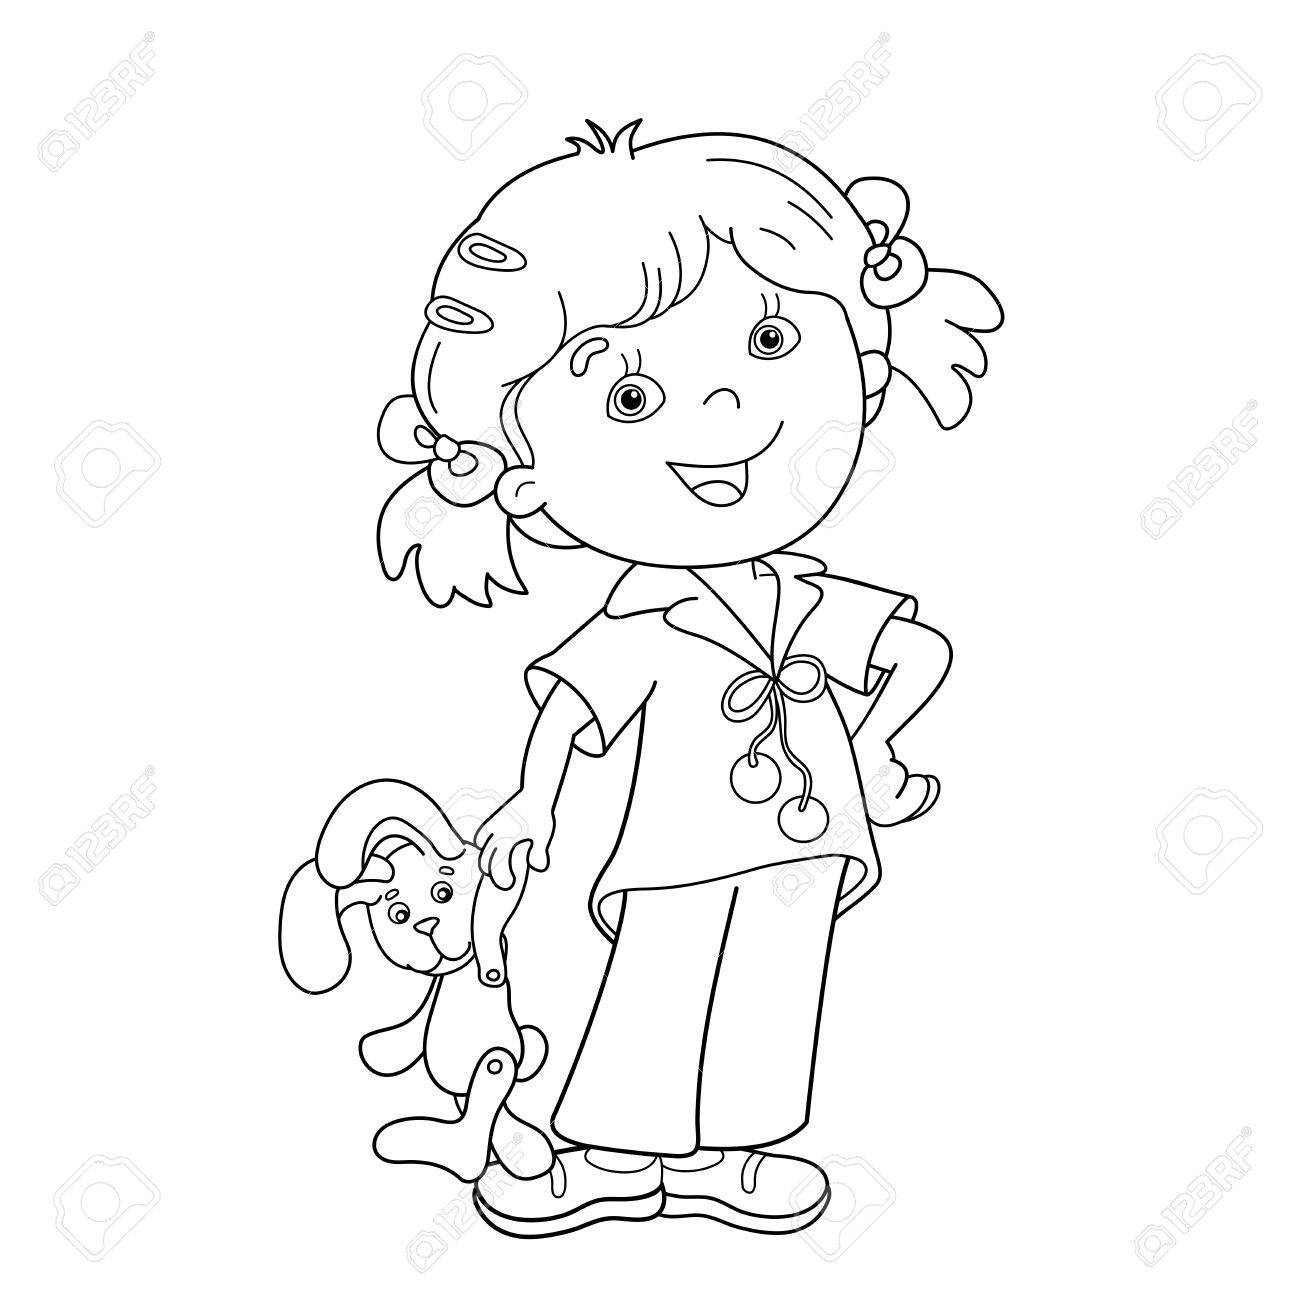 coloring page outline of cartoon girl with toy hare coloring book for kids stock vector